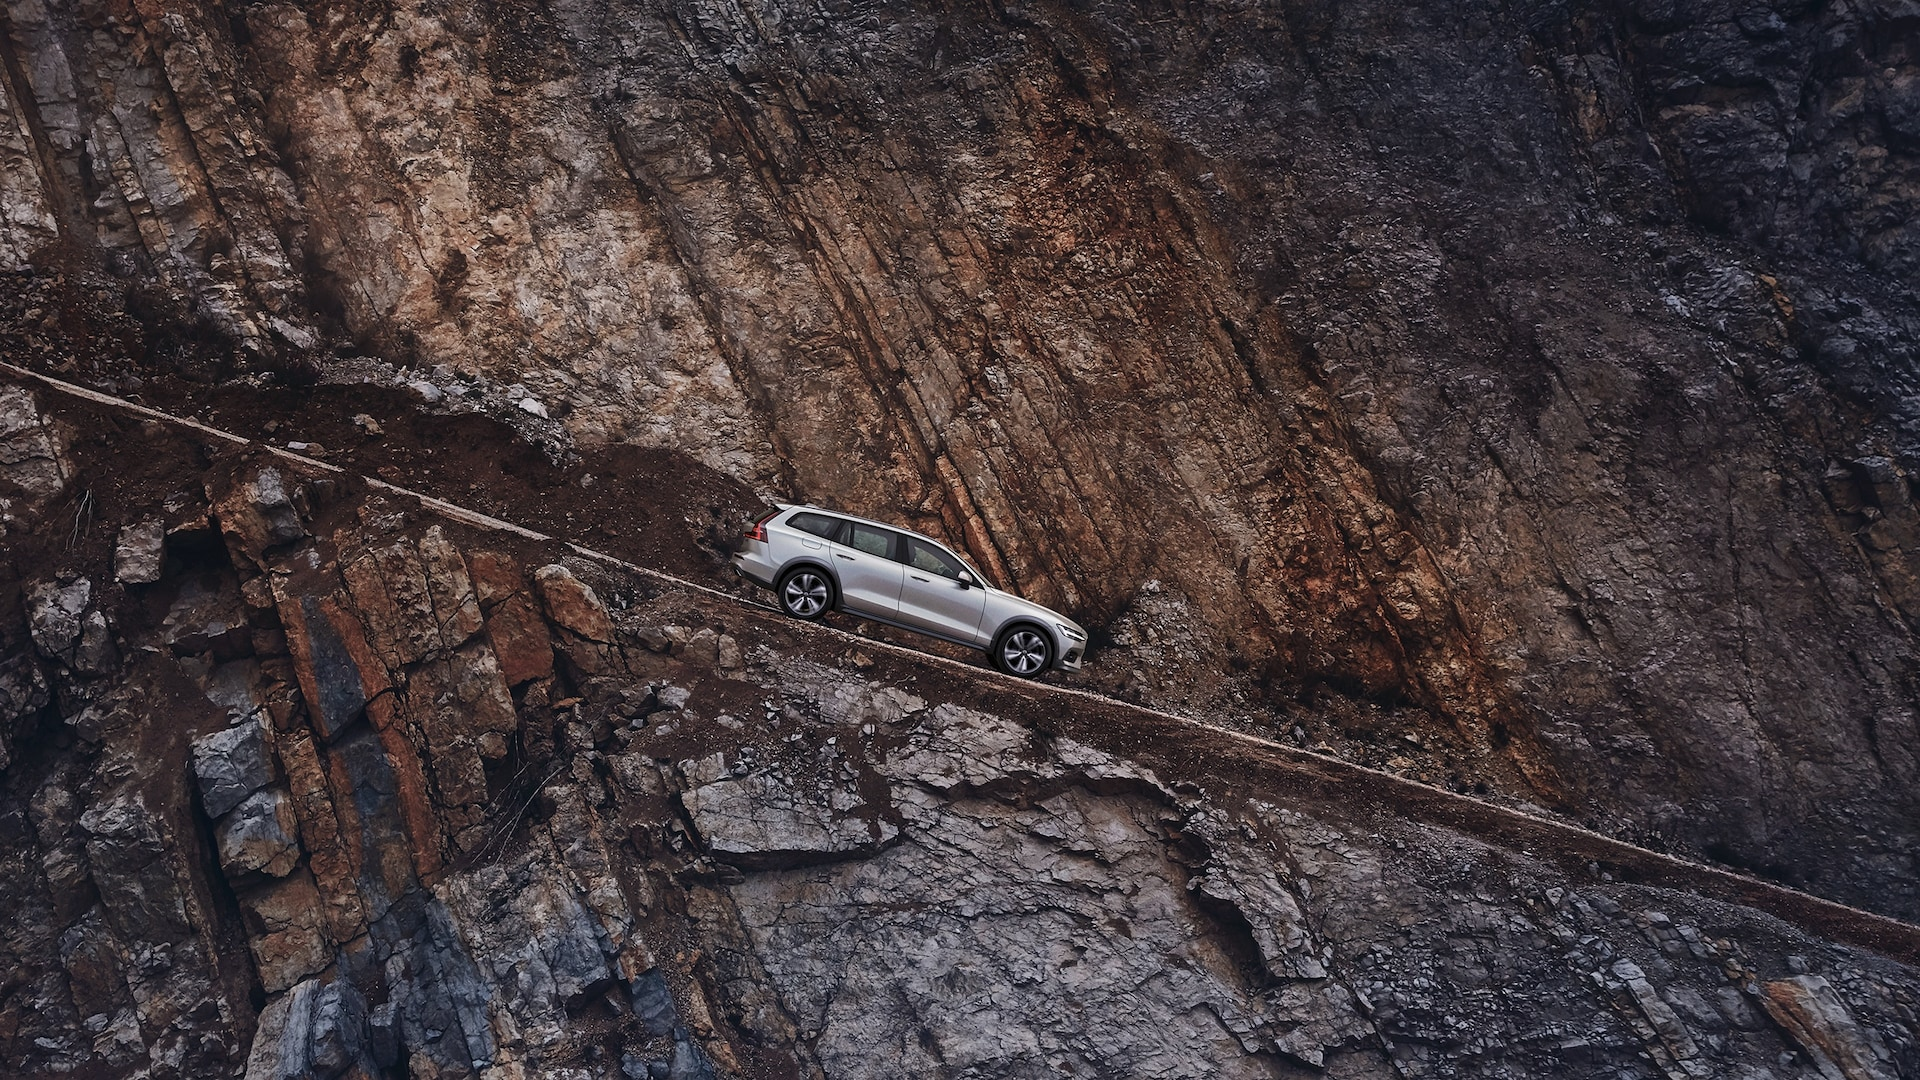 A Volvo V60 Cross Country drives down a mountainous road